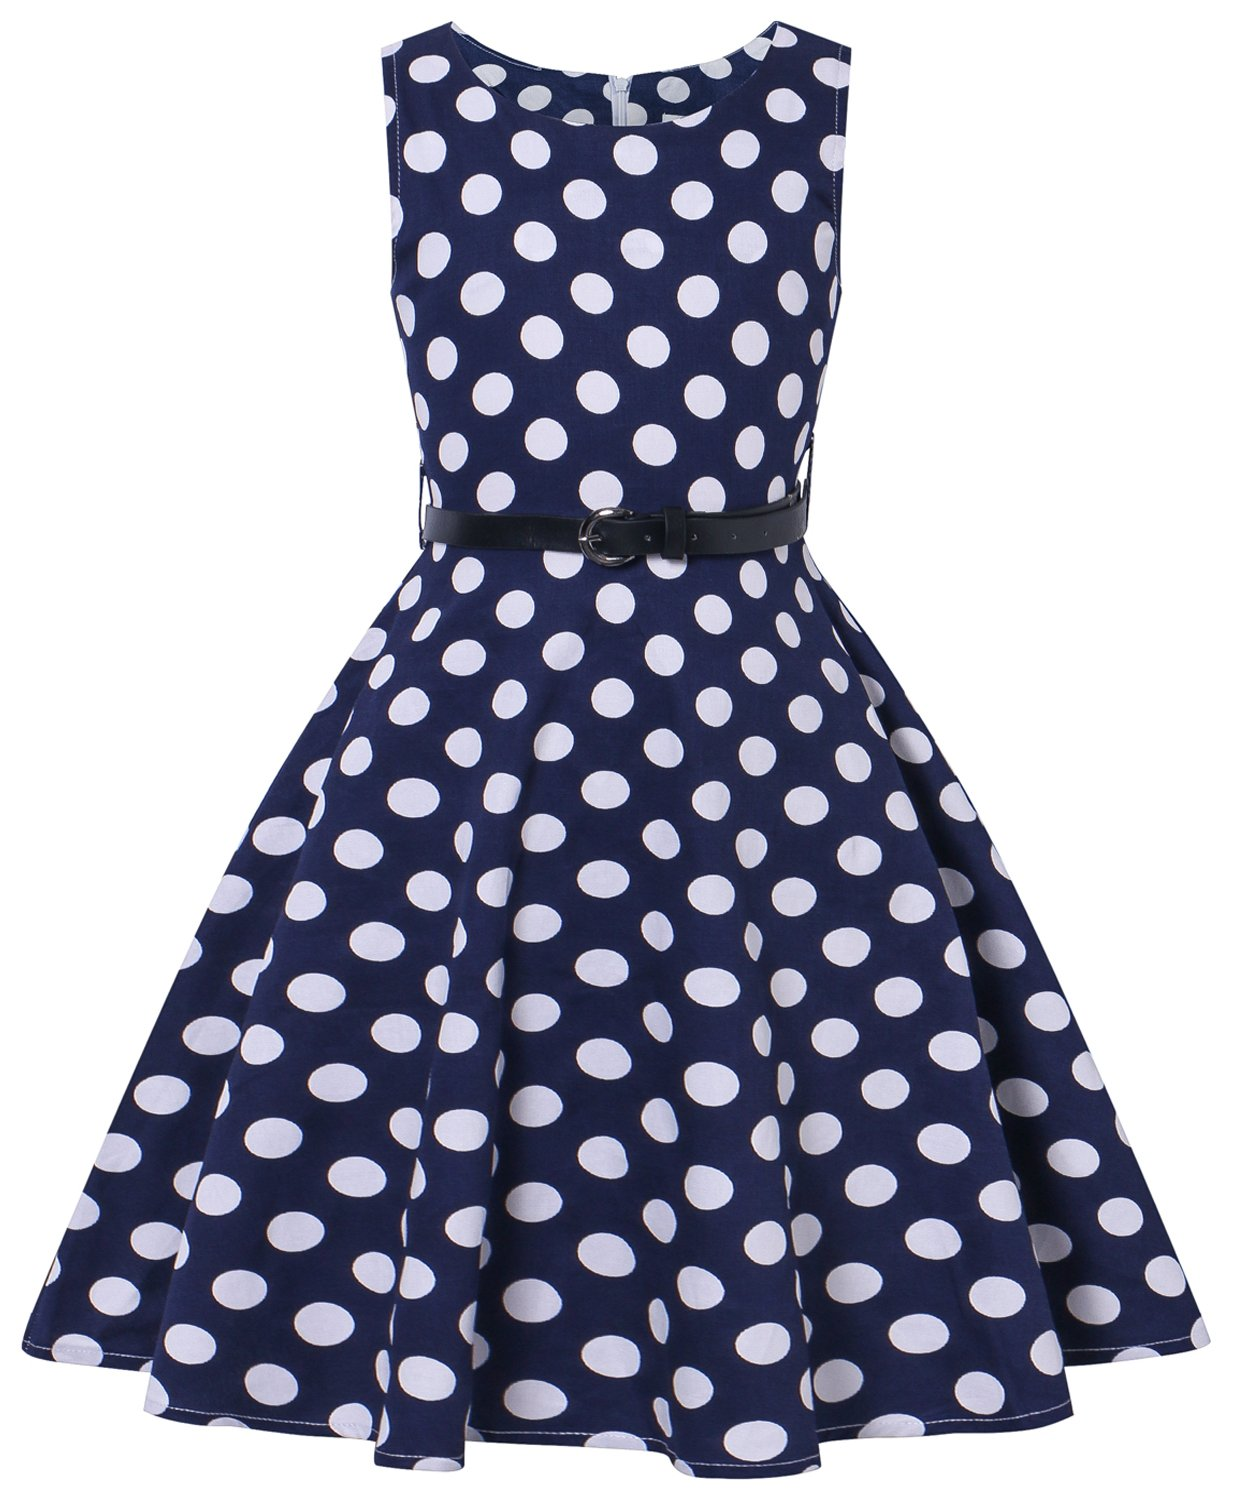 I2CRAZY Pinup 50's Vintage Floral Round Neck Casual Homecoming Dresses F03,9-10Years